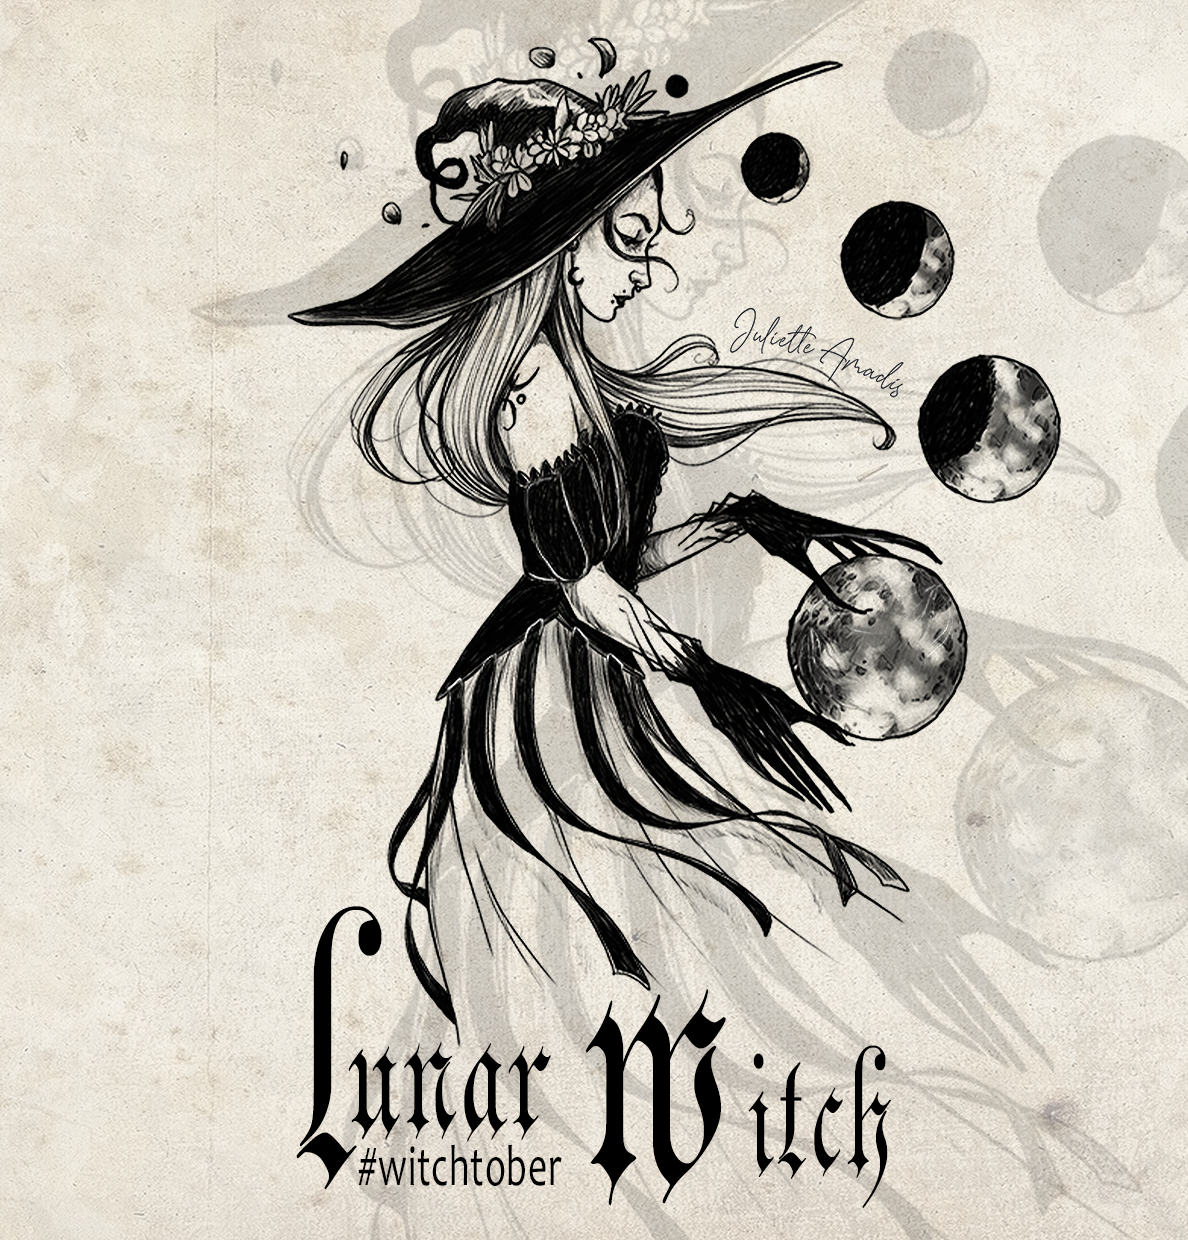 Witchtober 05 - Lunar Witch